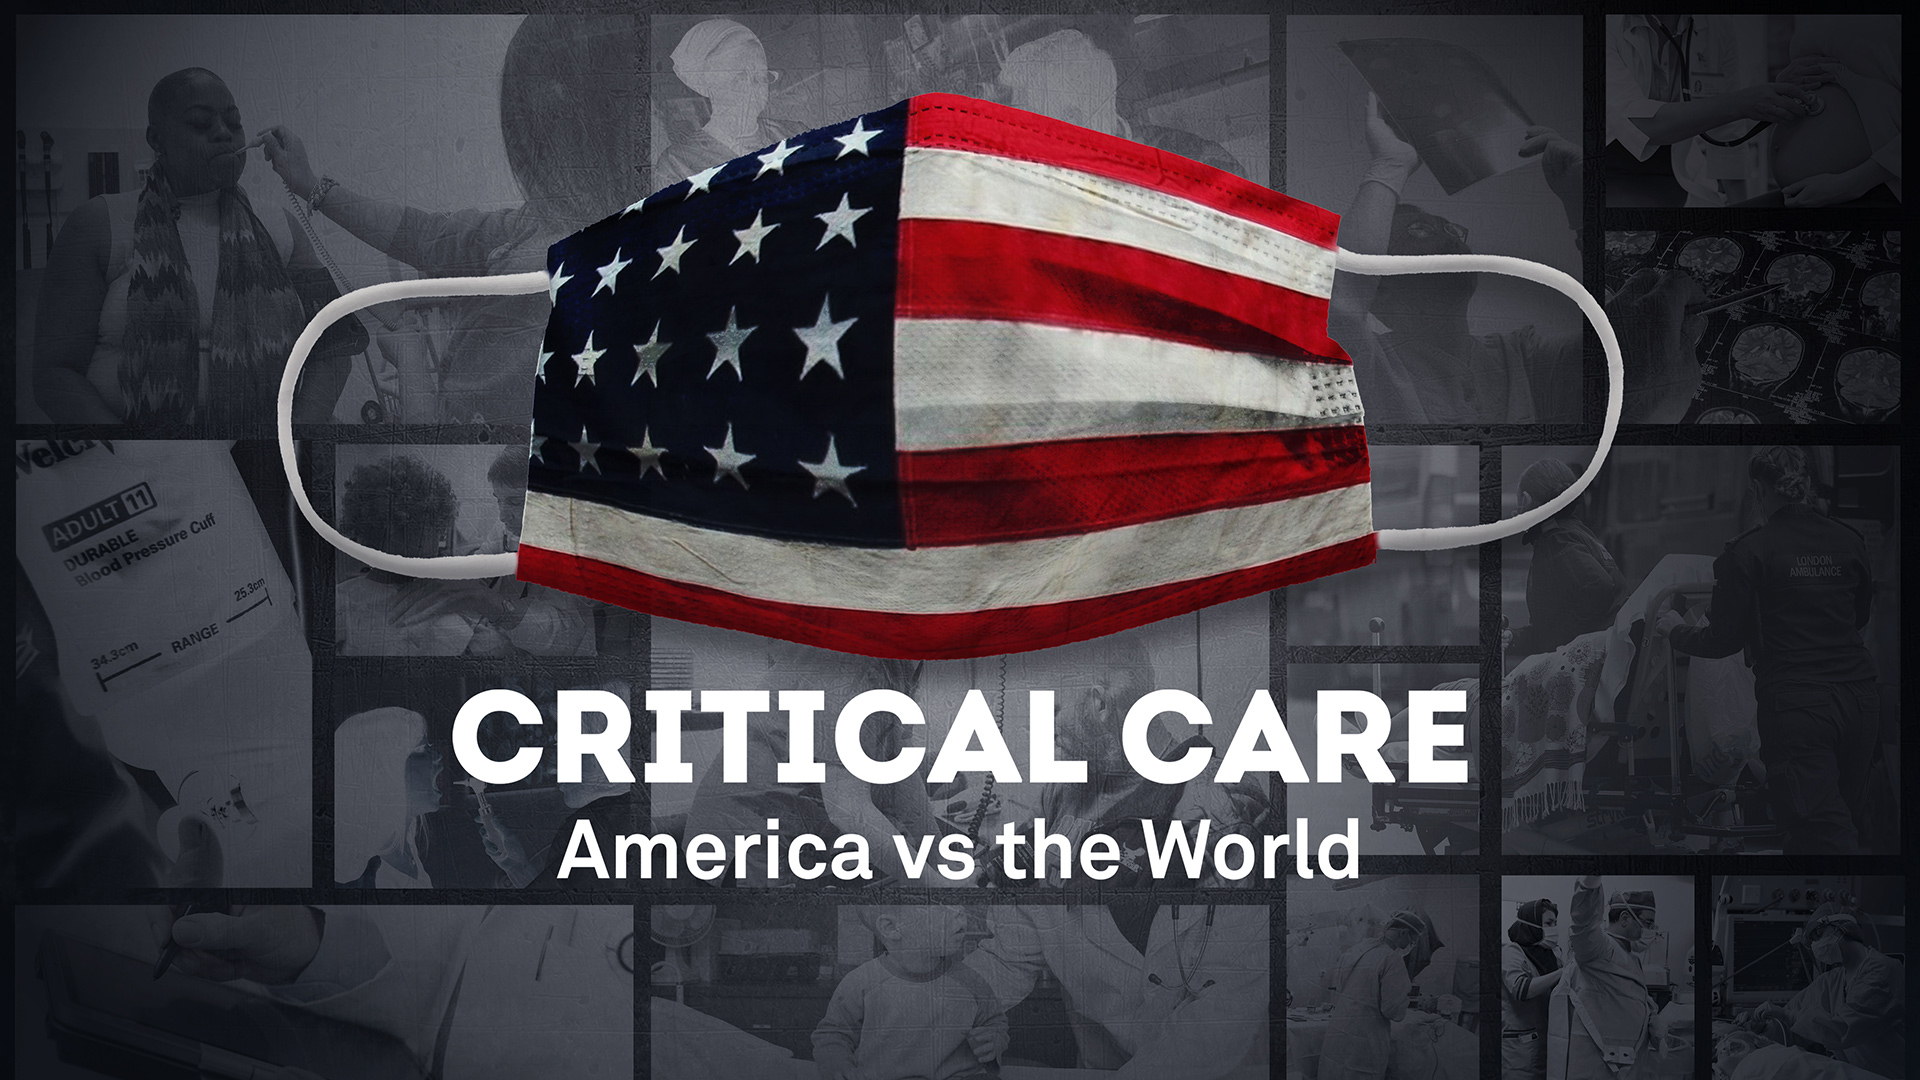 """An American flag patterned face mask over the words """"Critical Care, America vs. the World"""""""